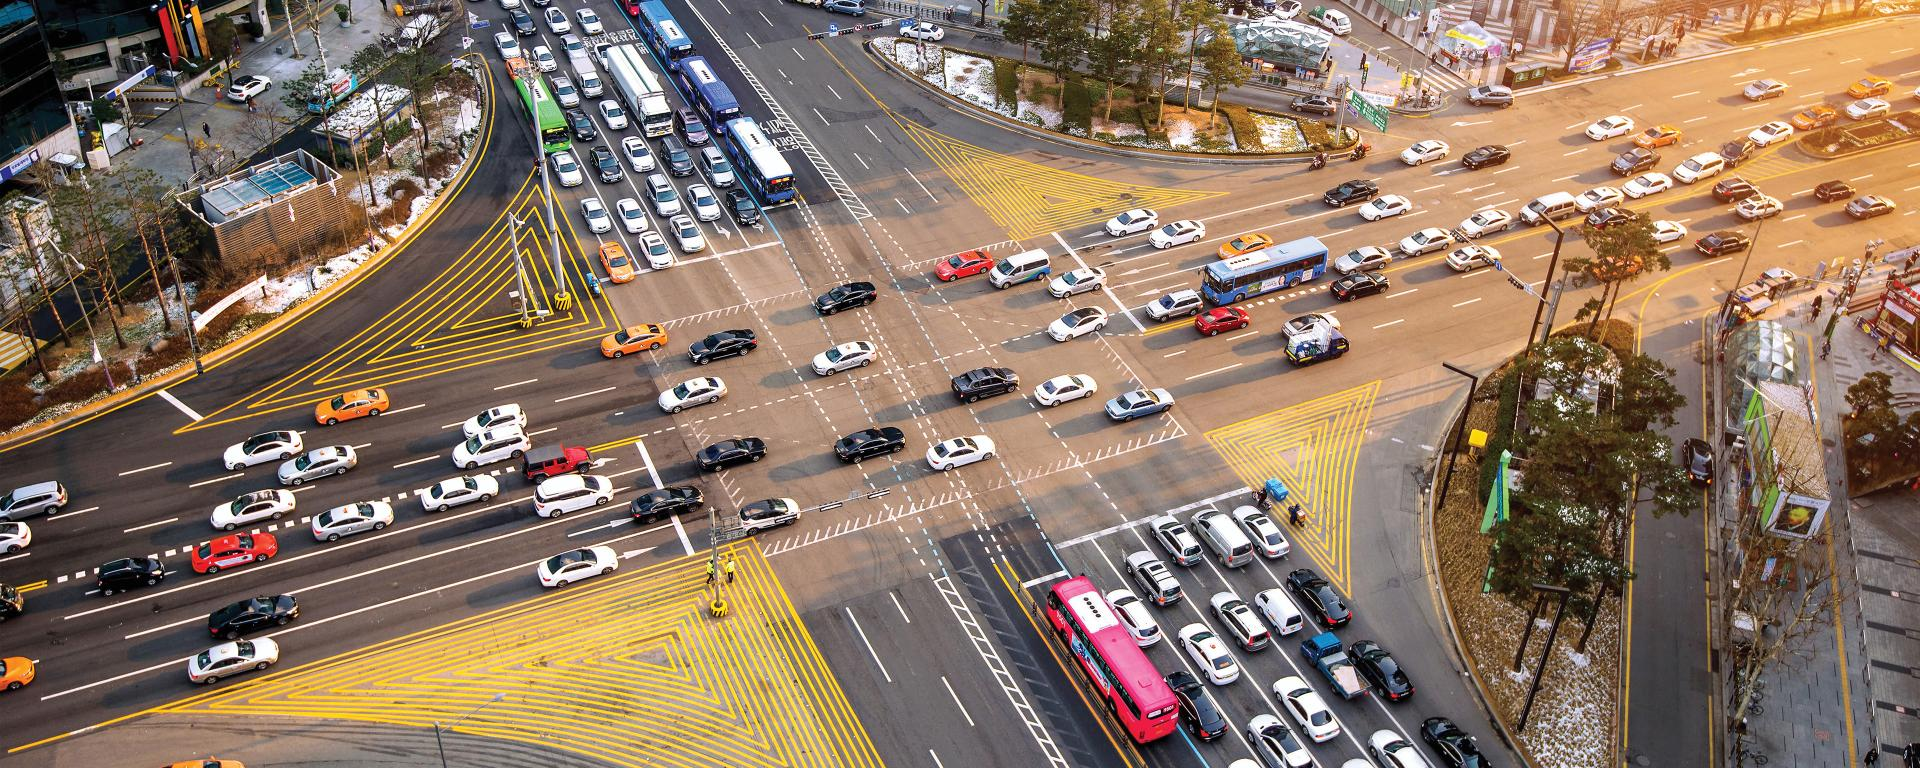 Busy traffic intersection in Gangnam Korea